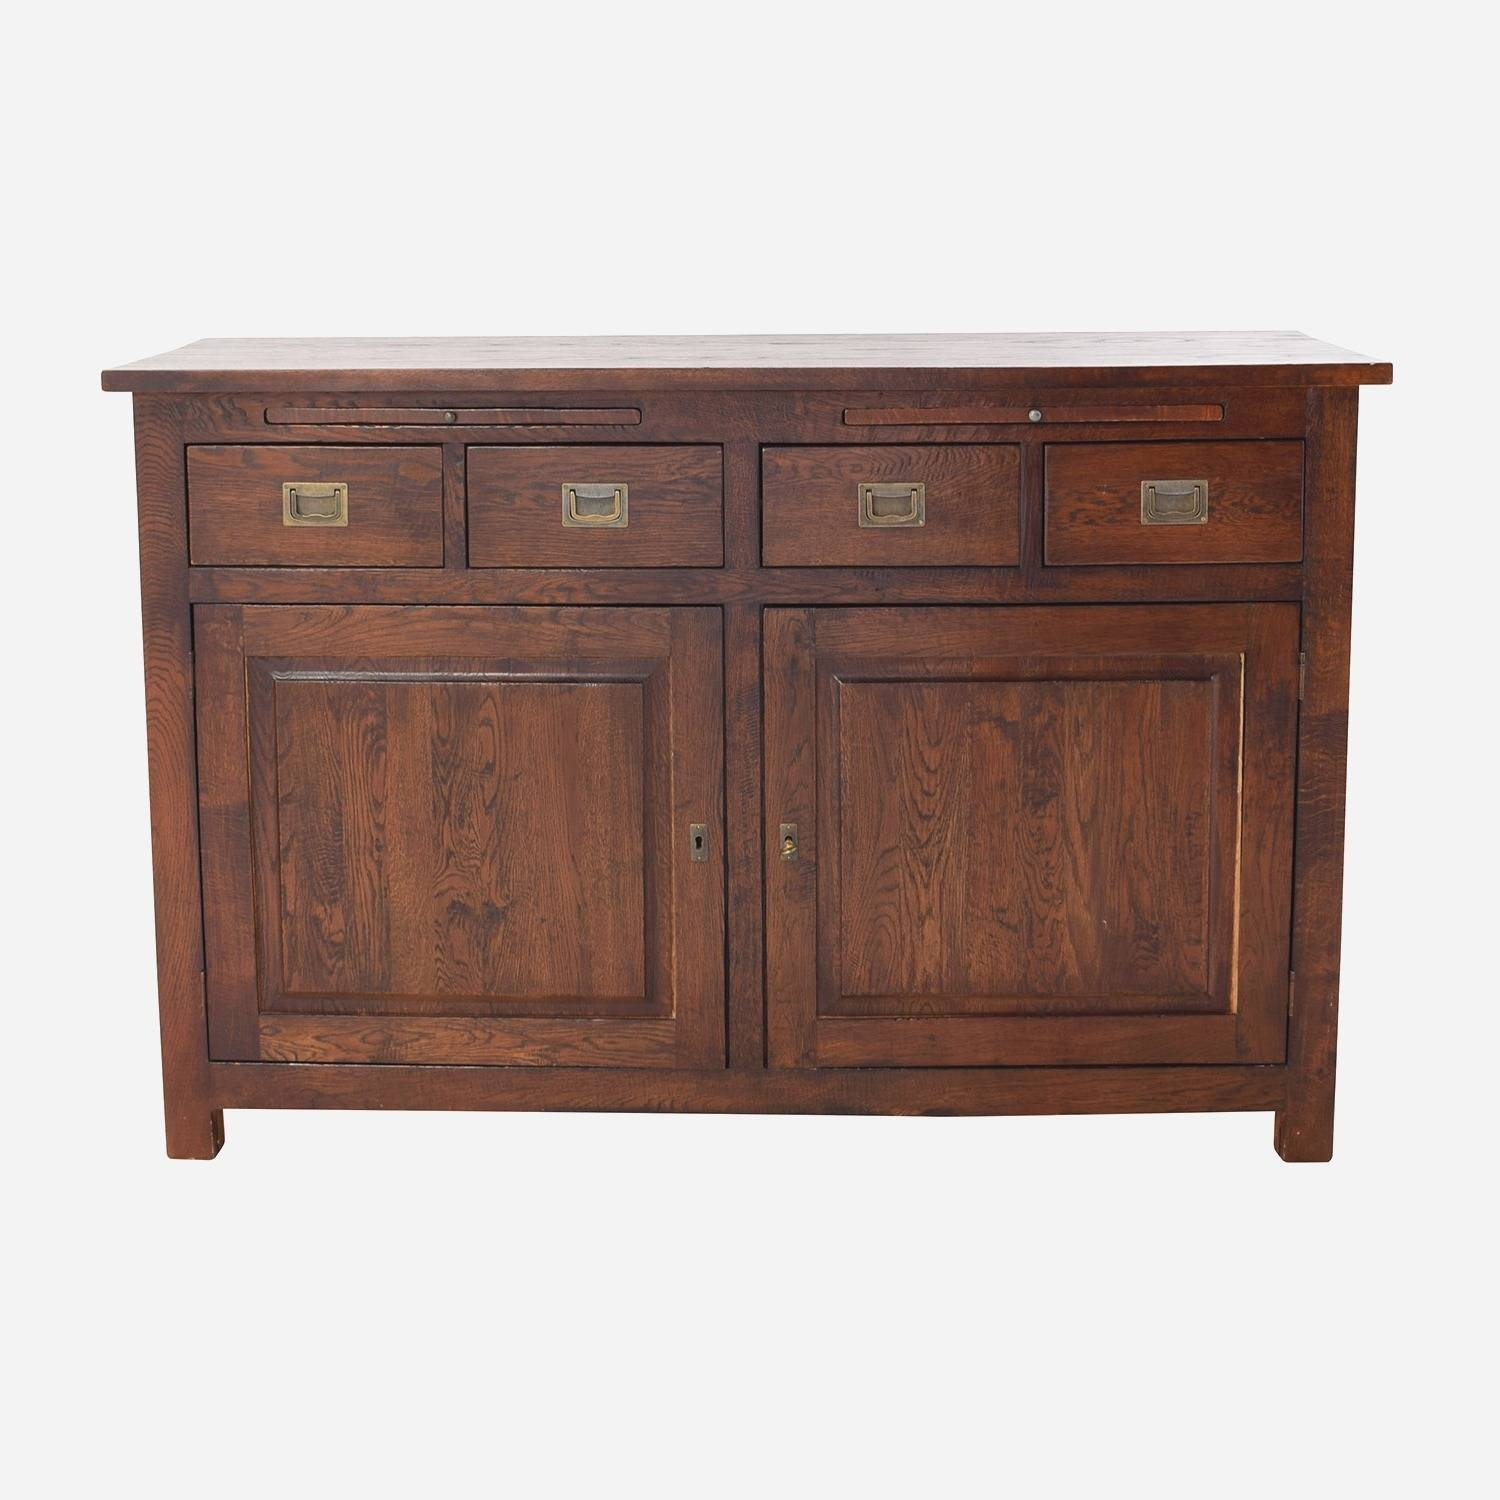 Solid Wood Sideboards And Buffets | Rembun.co with Real Wood Sideboards (Image 26 of 30)